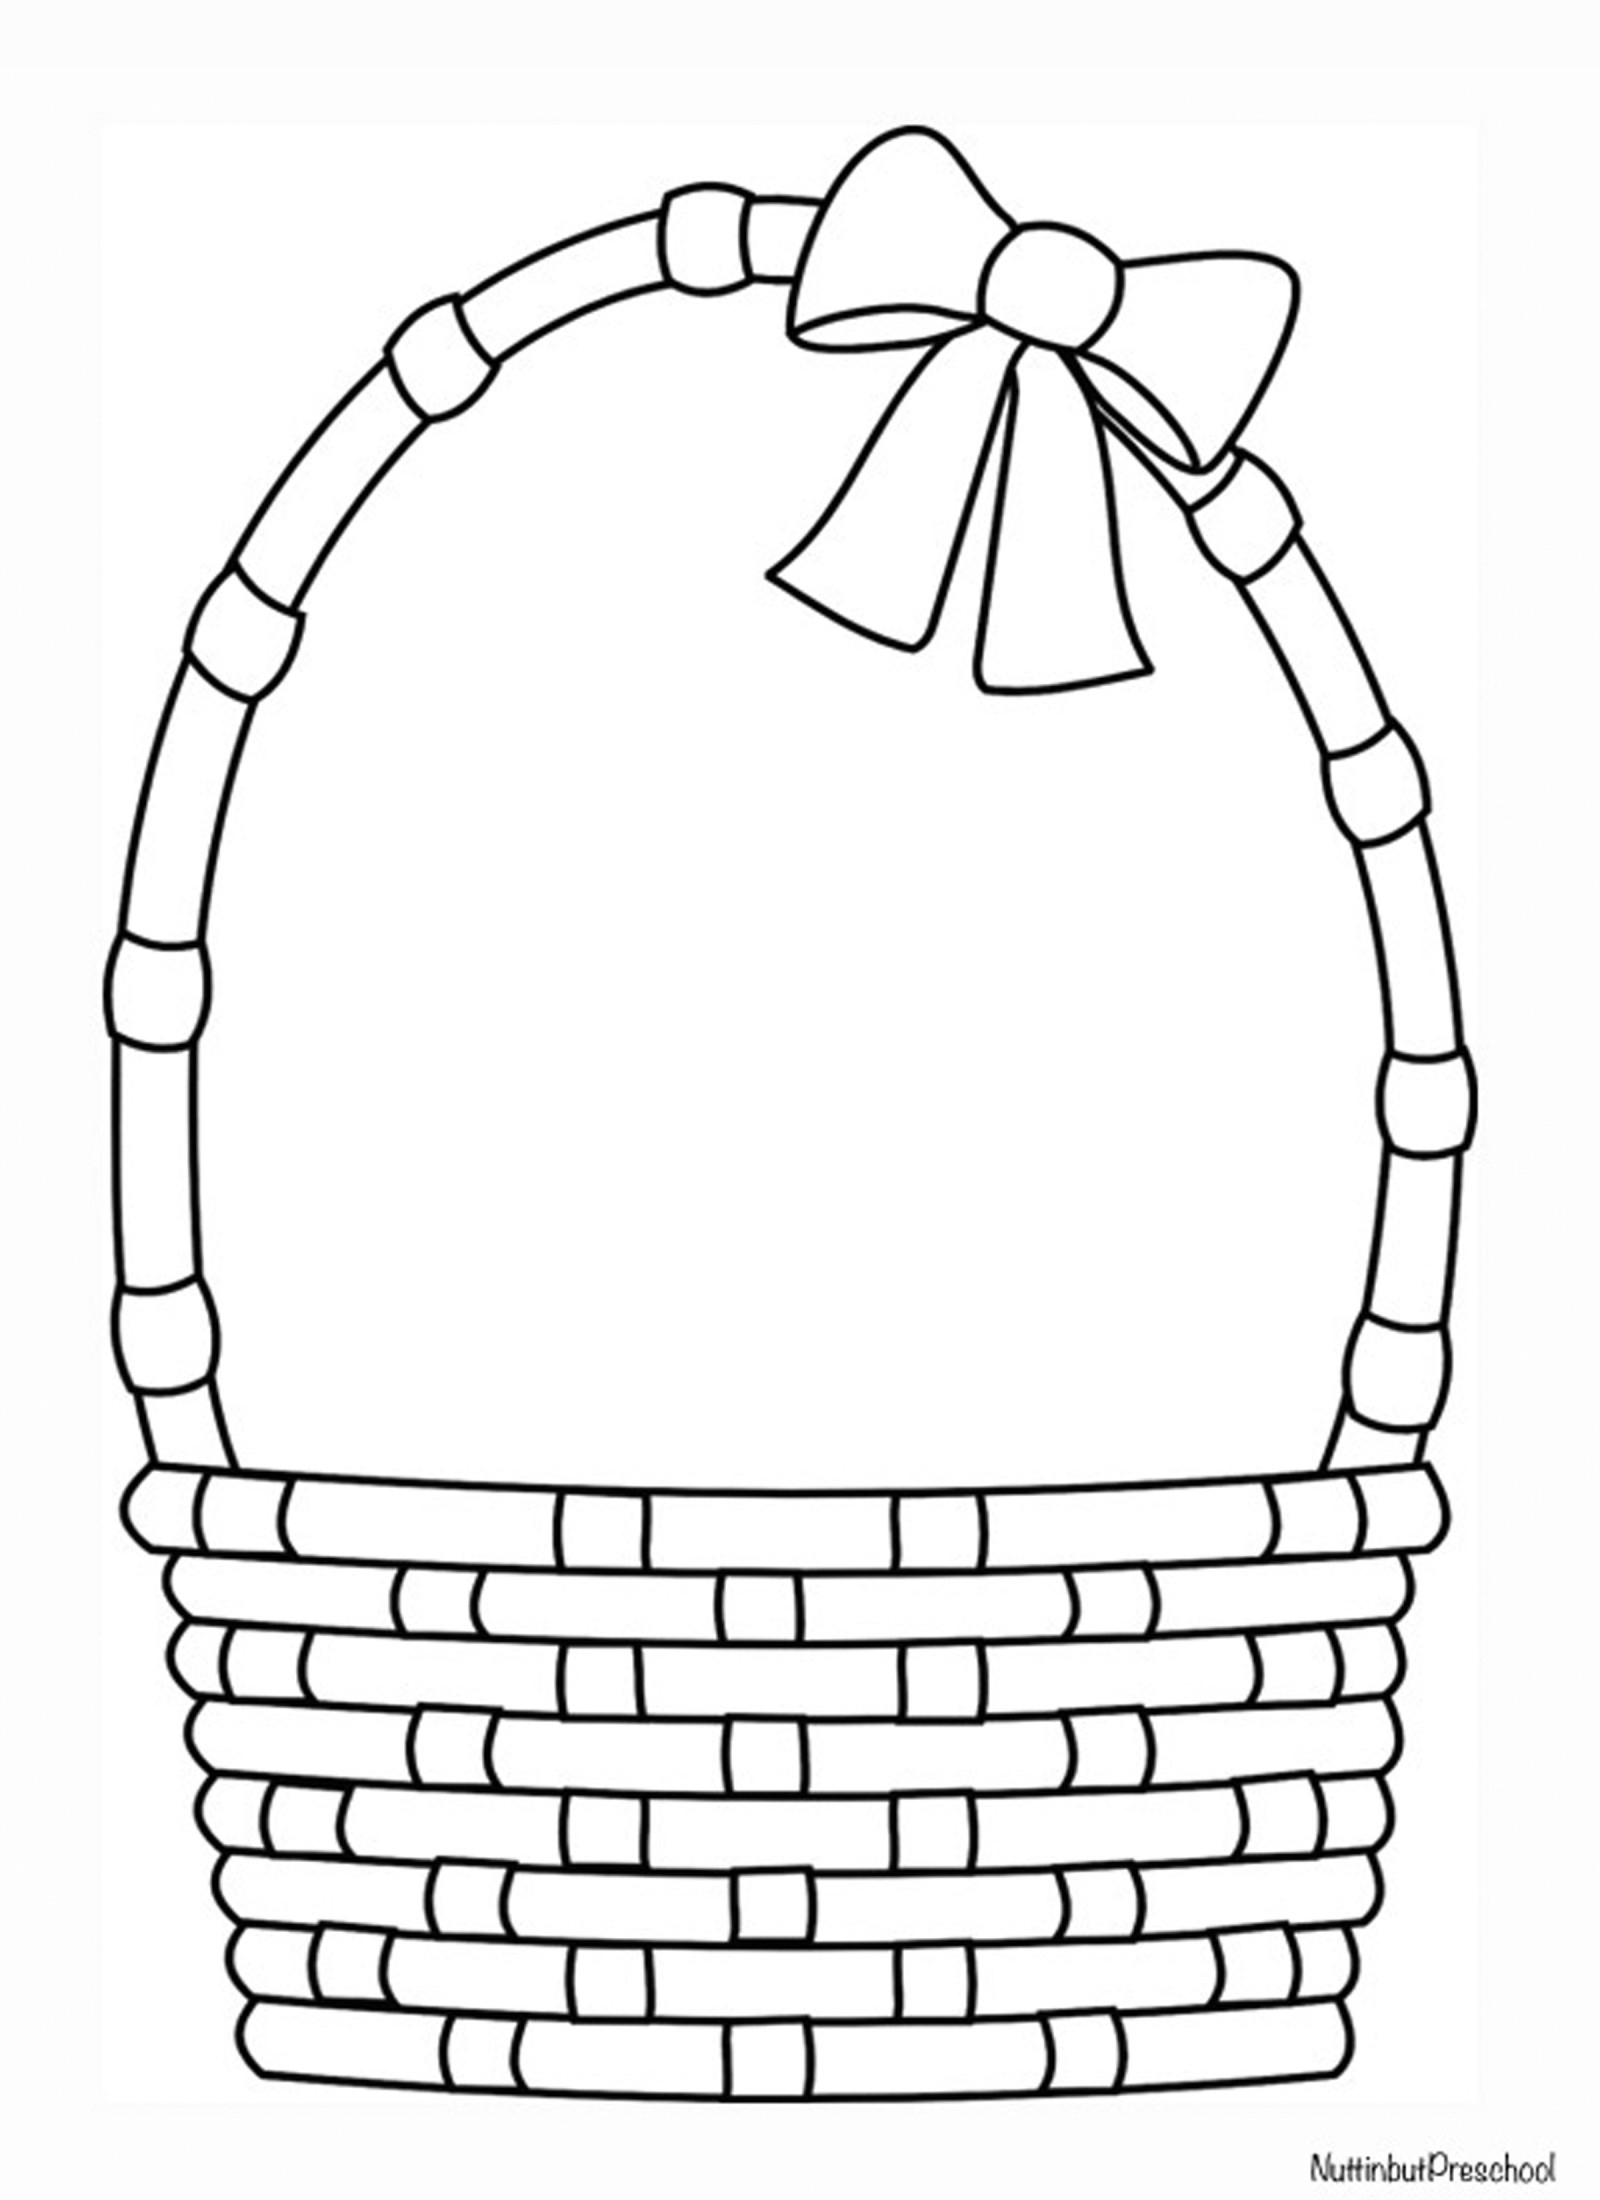 Easter Basket Coloring Pages Awesome Empty Fruit Collection - Free Printable Coloring Pages Easter Basket